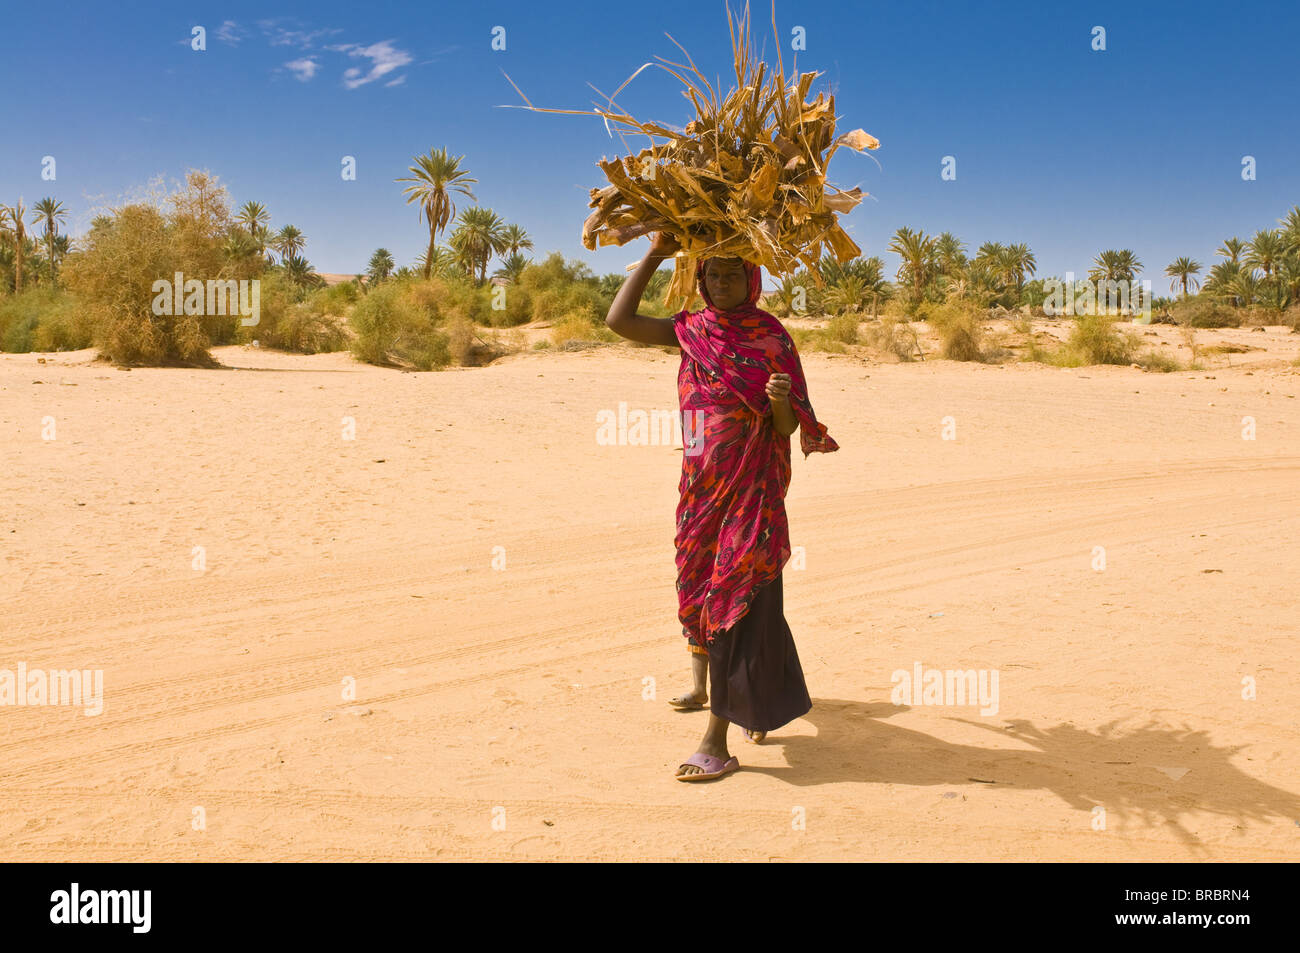 Woman carrying firewood, Ouadane, Mauritania - Stock Image